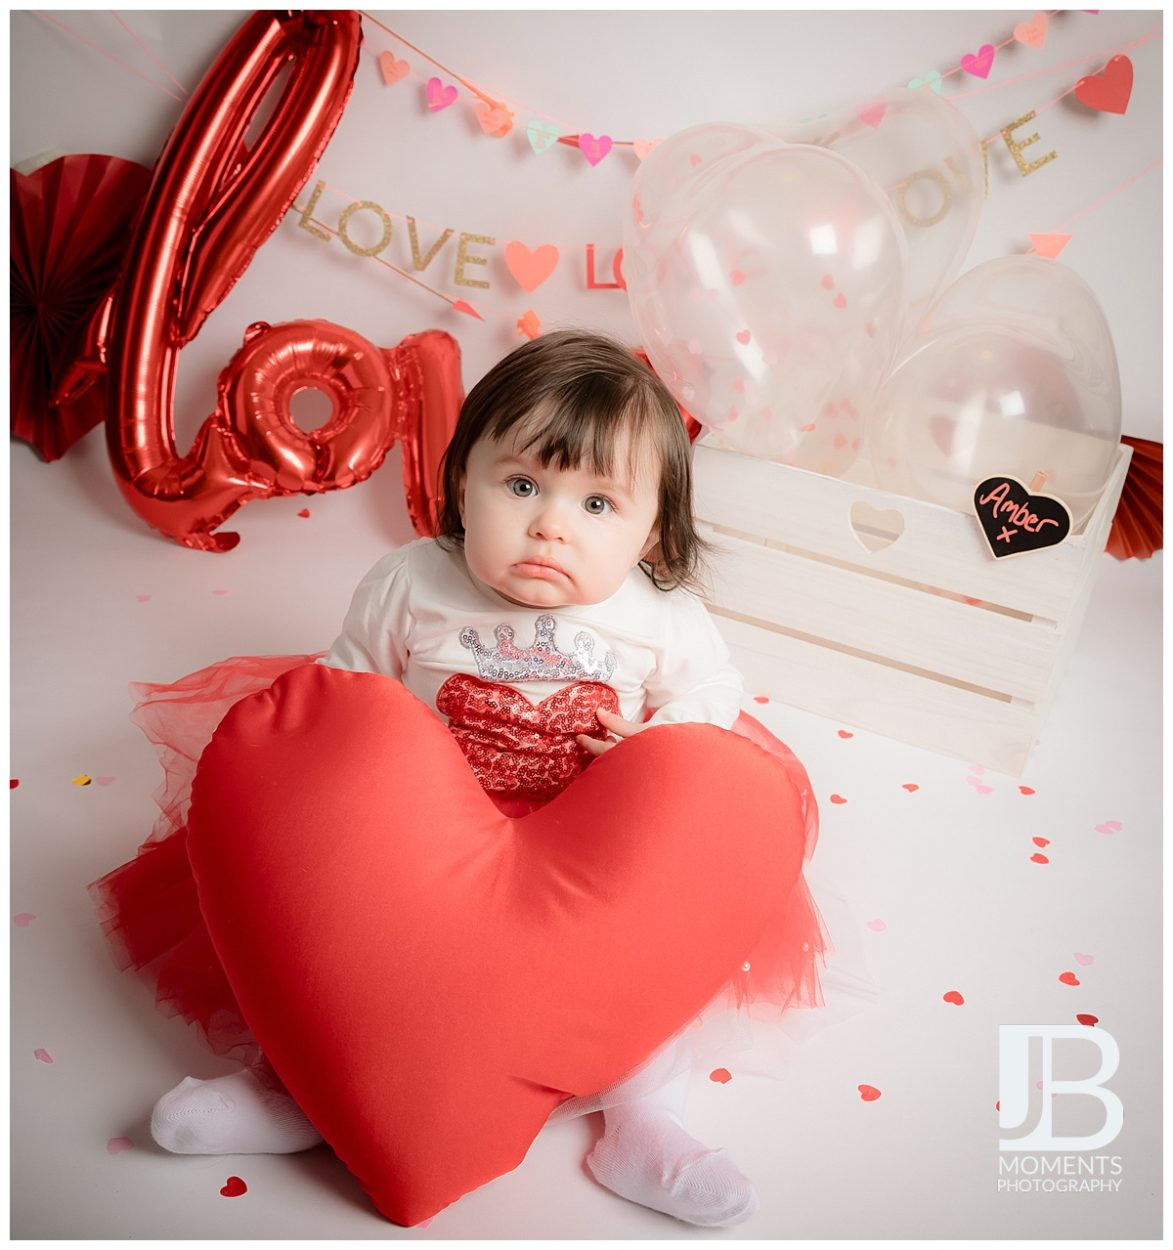 Child/Toddler Photography by JB Moments Photography